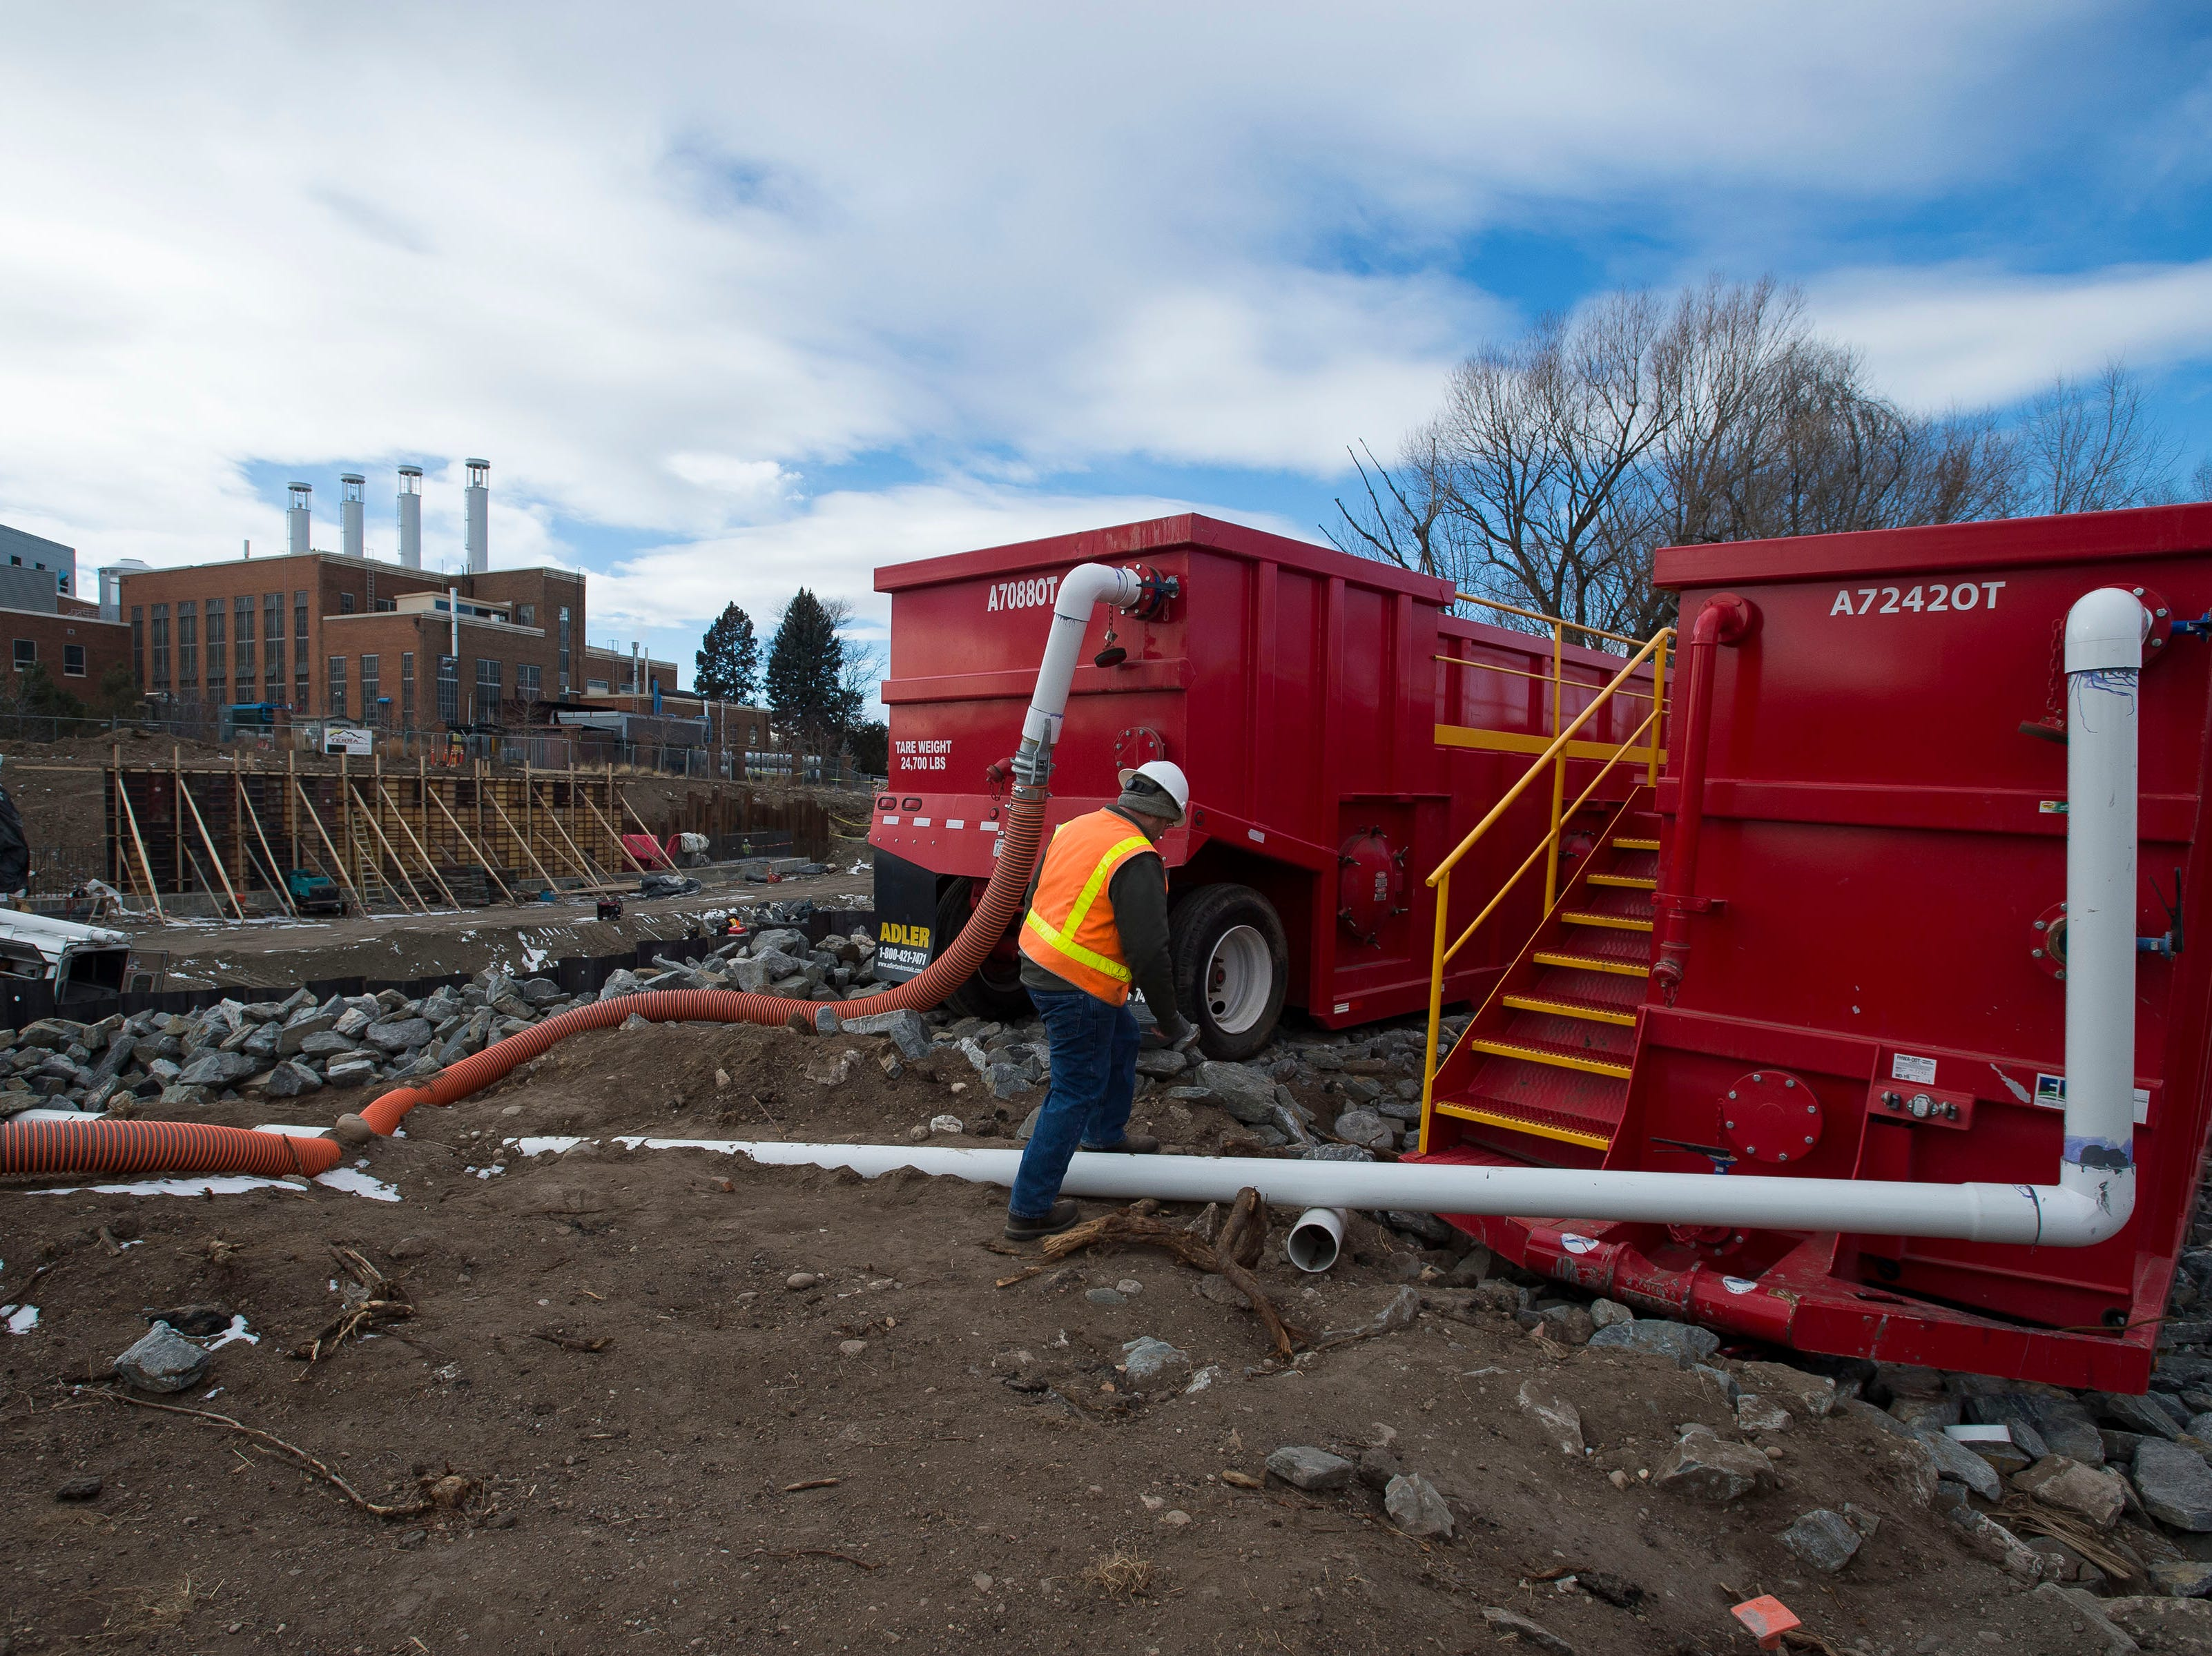 Senior landscape architect for the city of Fort Collins Matt Day walks up to the onsite water treatment tanks on Wednesday, Jan. 23, 2019, on the Cache la Poudre River, just South of North College Avenue in Fort Collins, Colo.